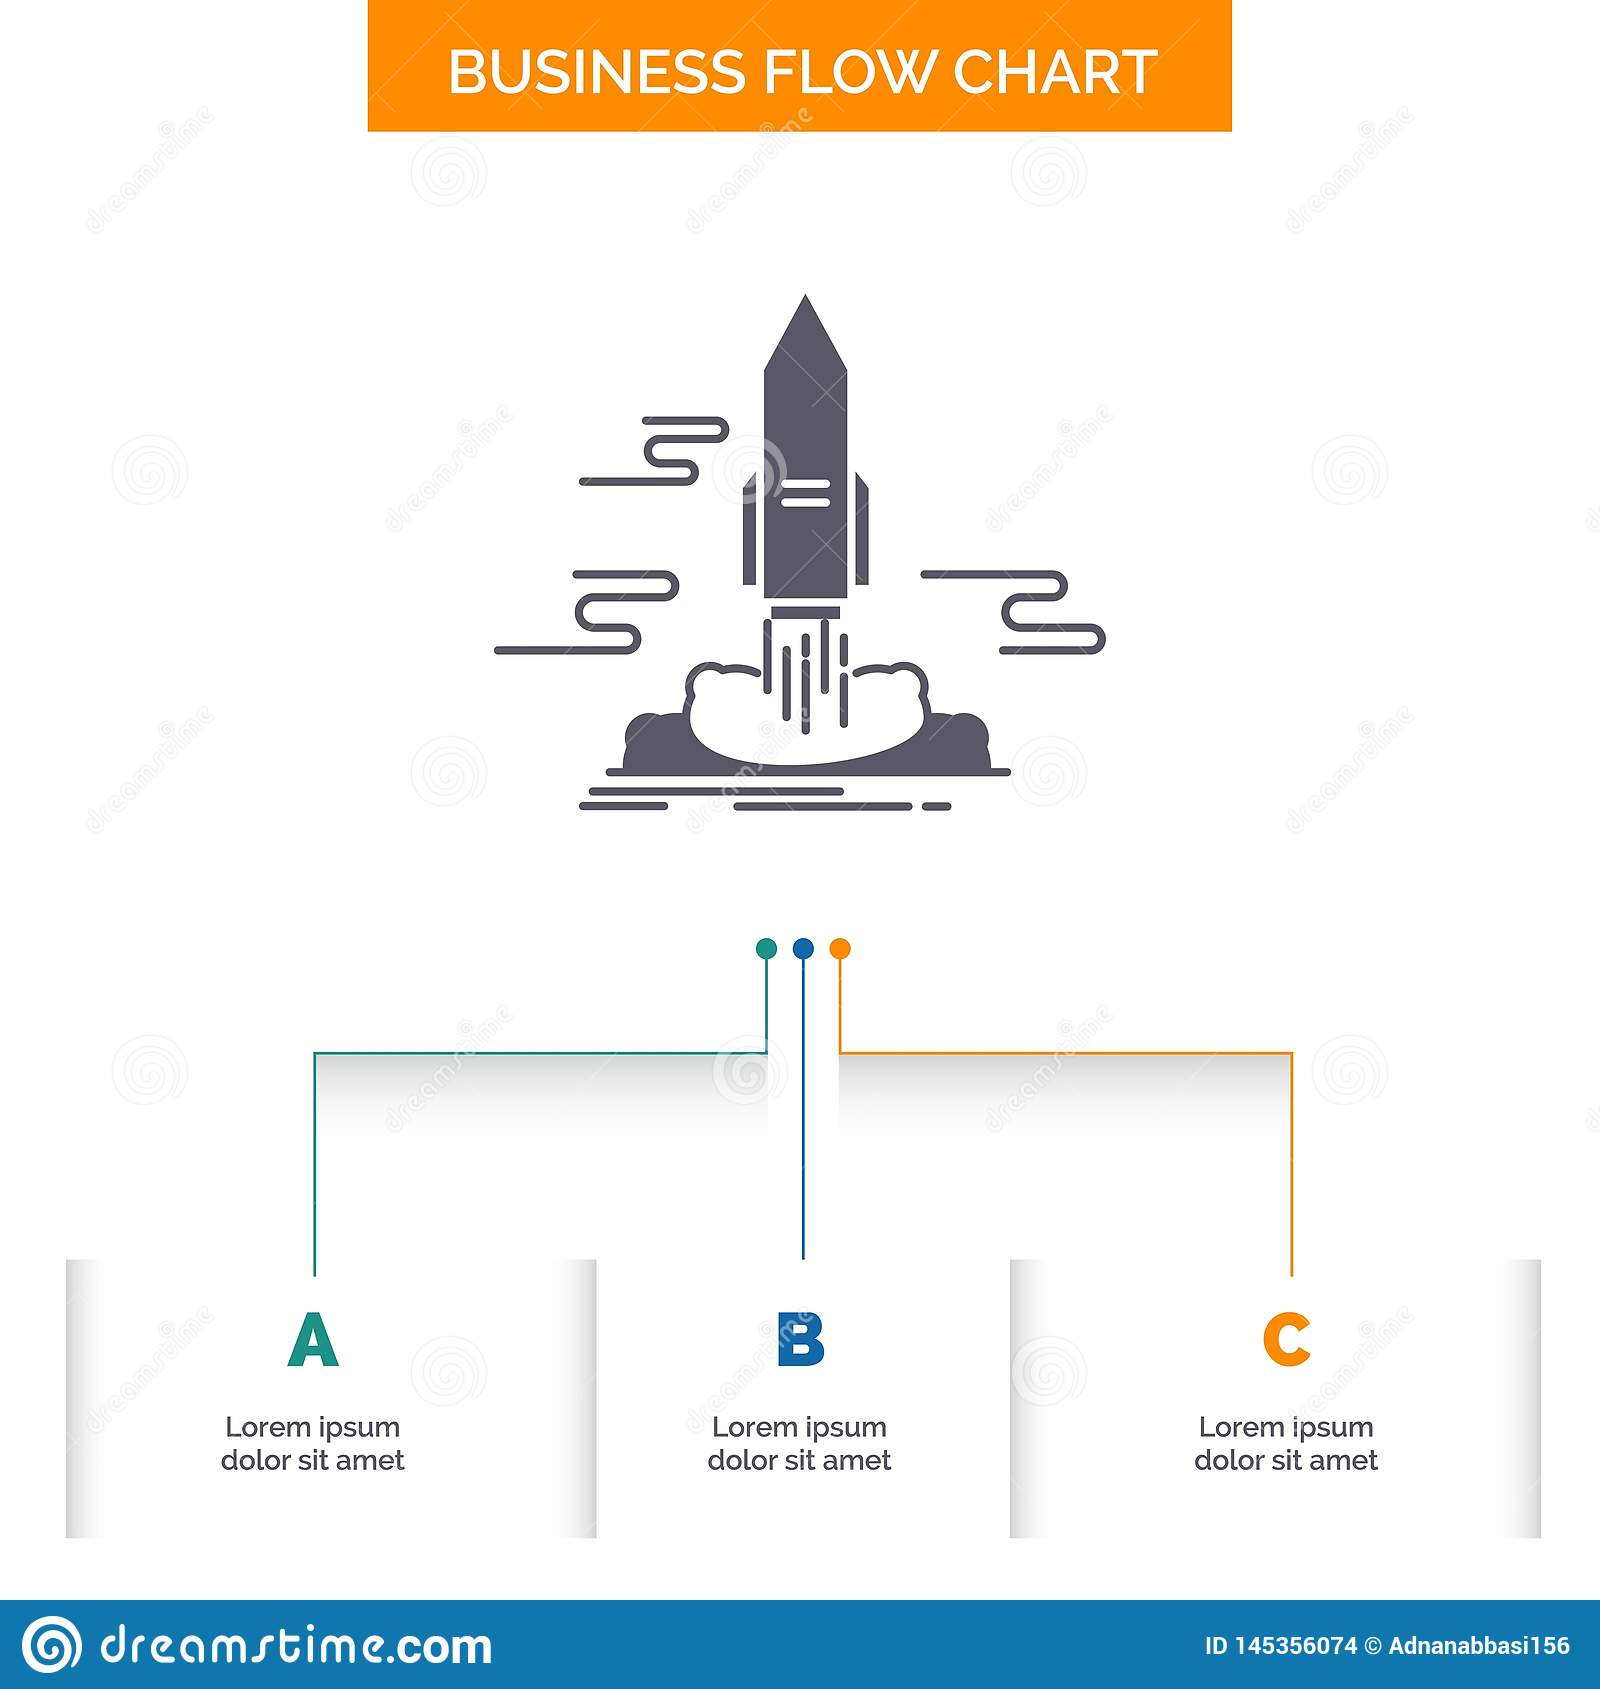 launch, Publish, App, shuttle, space Business Flow Chart Design with 3 Steps. Glyph Icon For Presentation Background Template